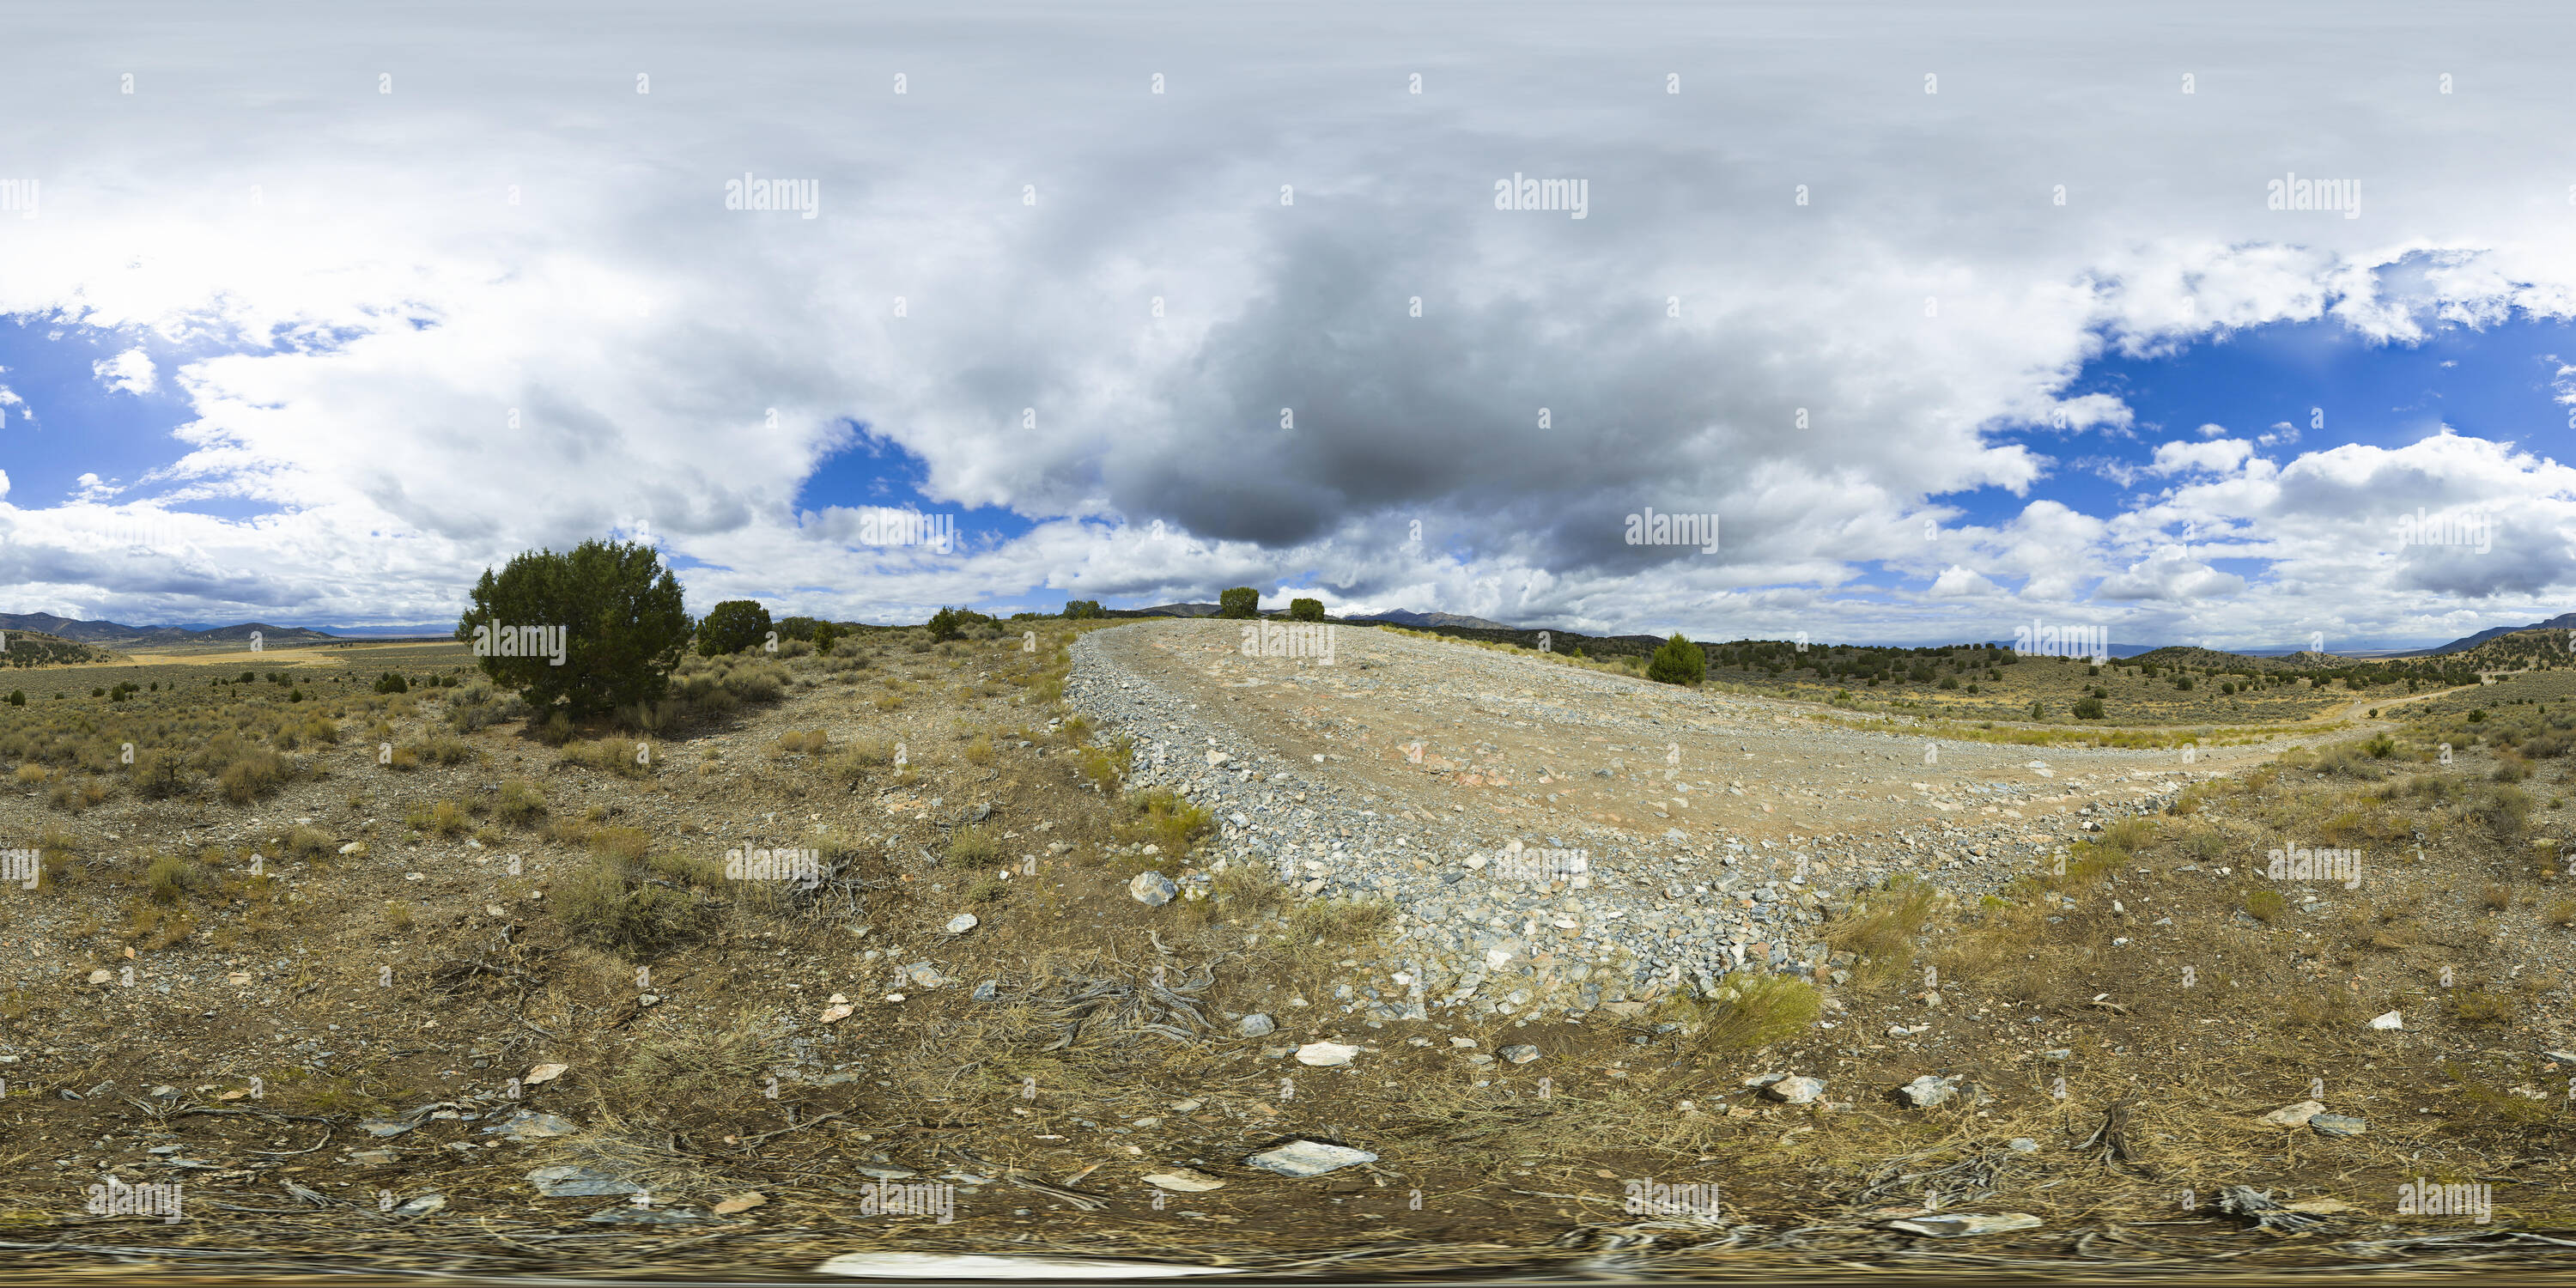 360 View of VR 360 Spherical panorama of a desert road through